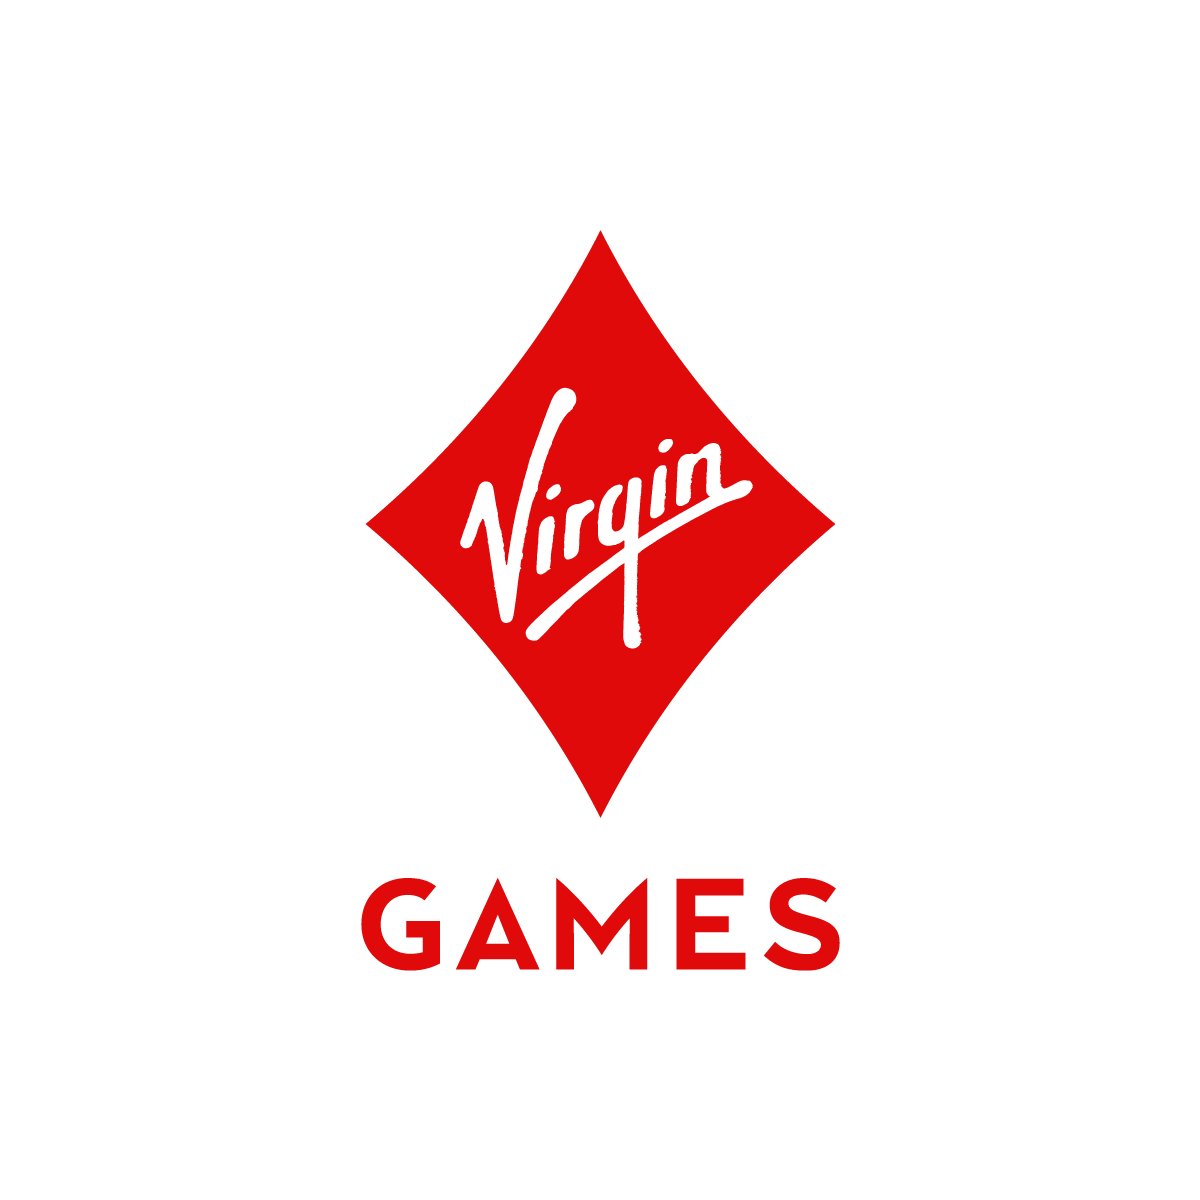 Virgin Games logo